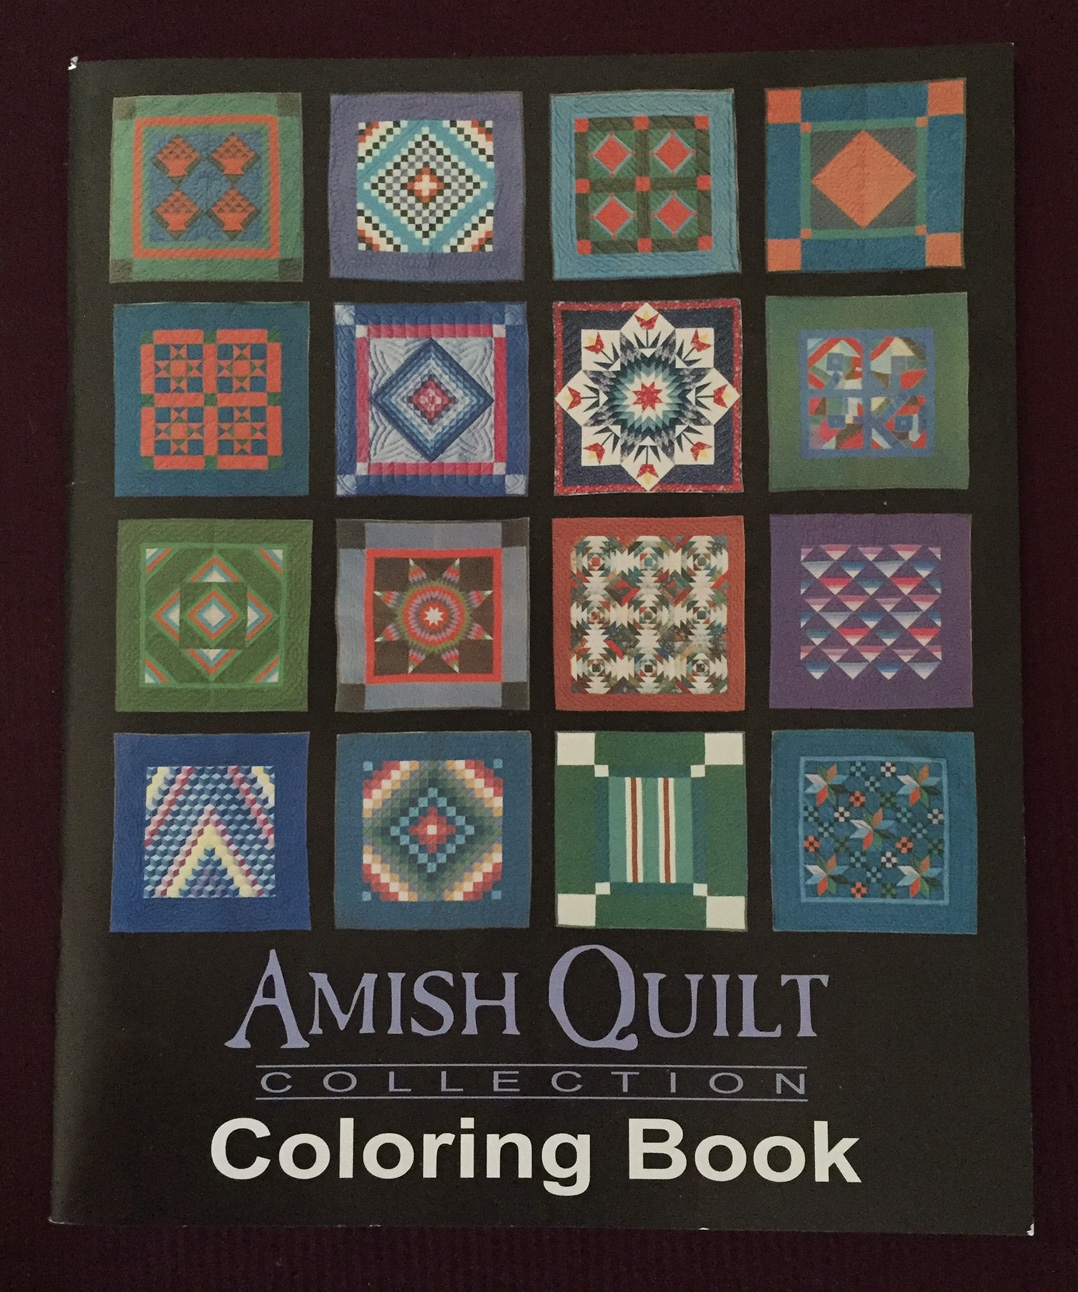 Amish Quilt Coloring Book